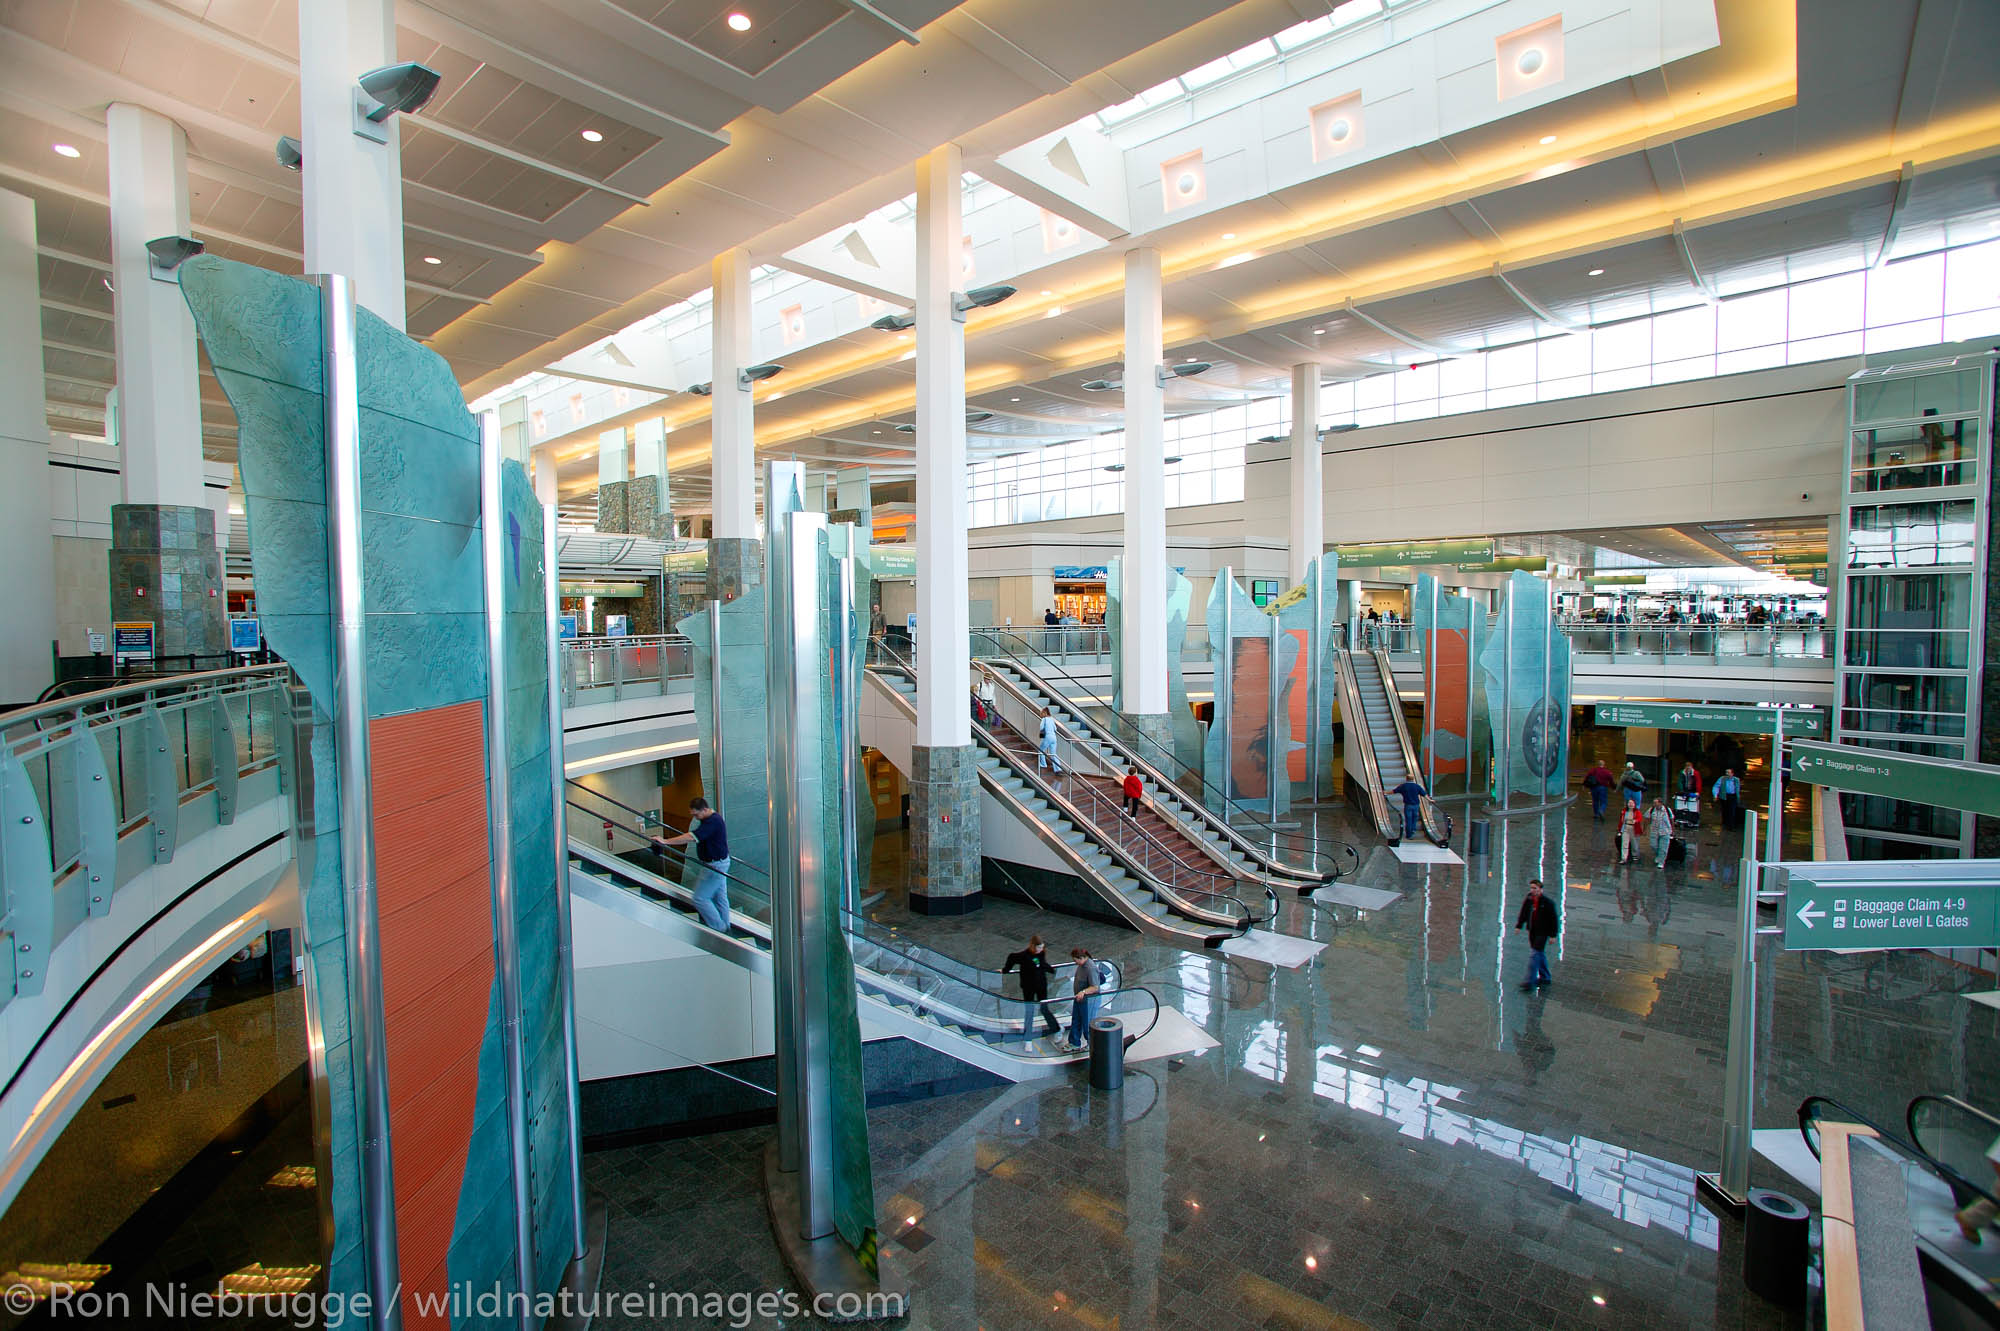 Inside the new (2004) terminal at the Ted Stevens Anchorage International Airport, Anchorage, Alaska.